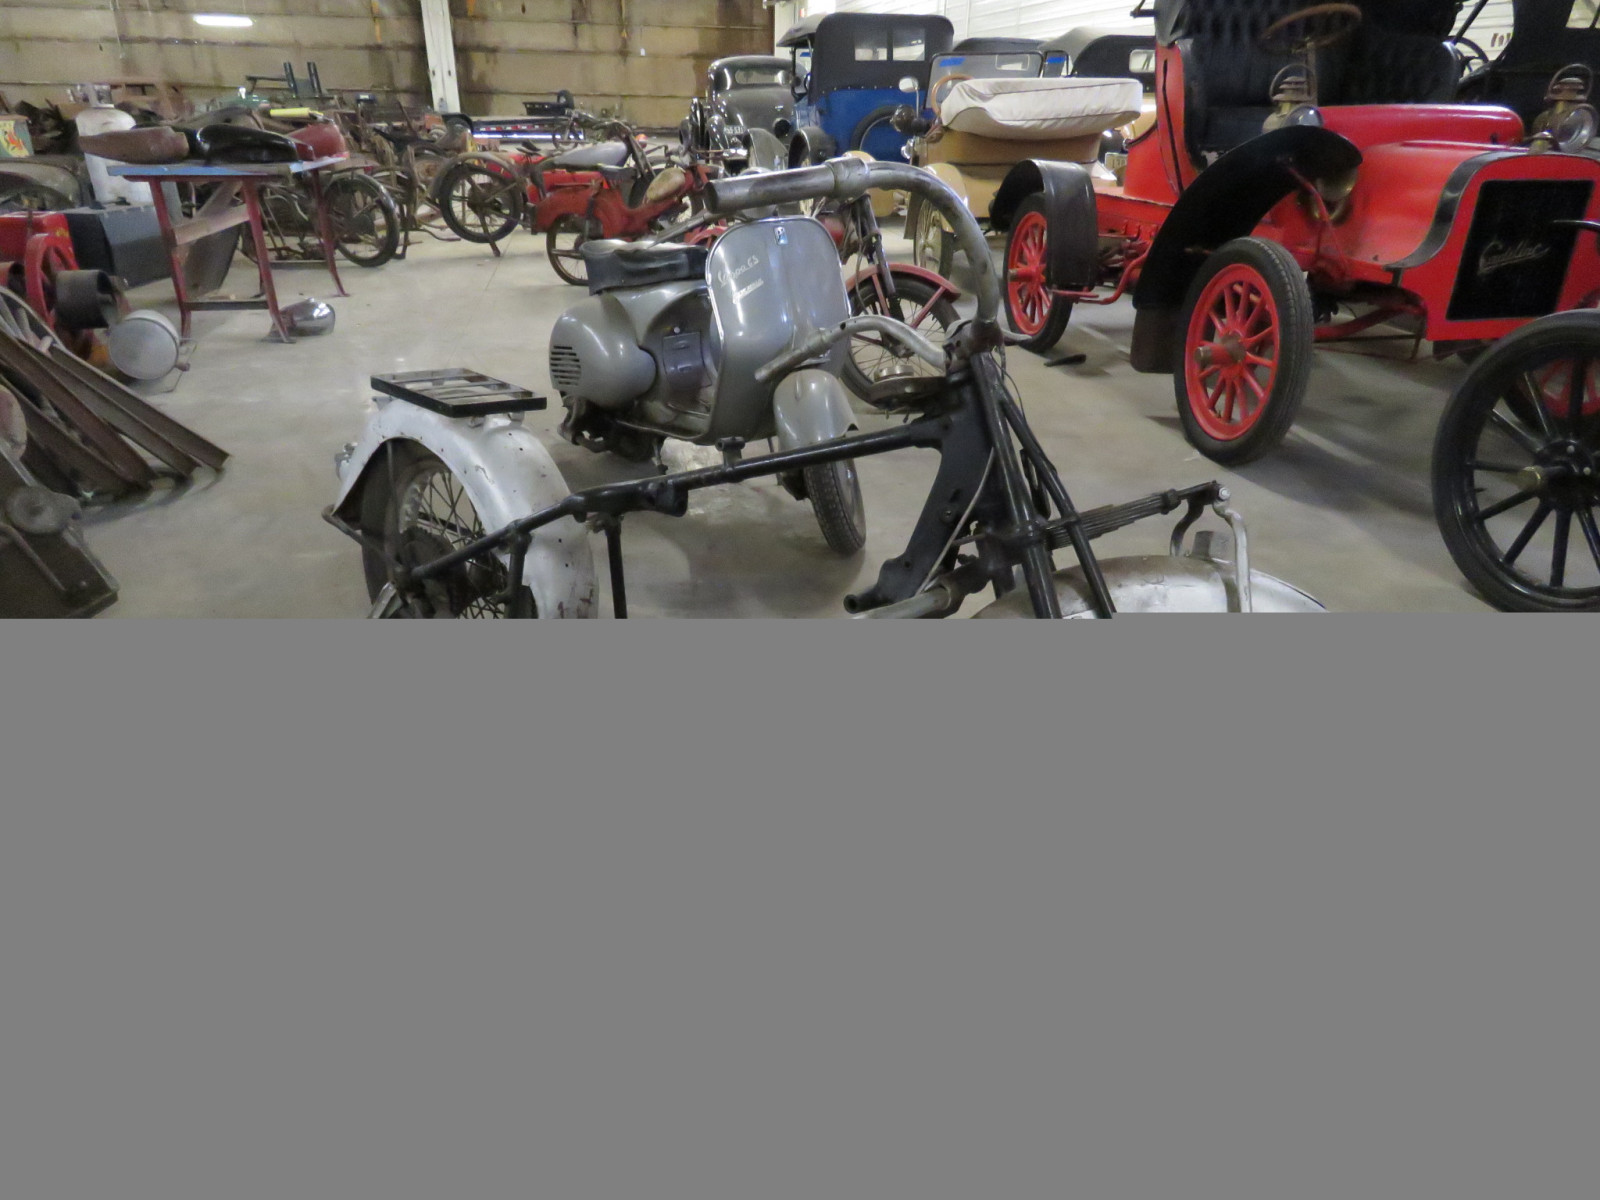 RARE 1930's Indian 4 cylinder Motorcycle - Image 2